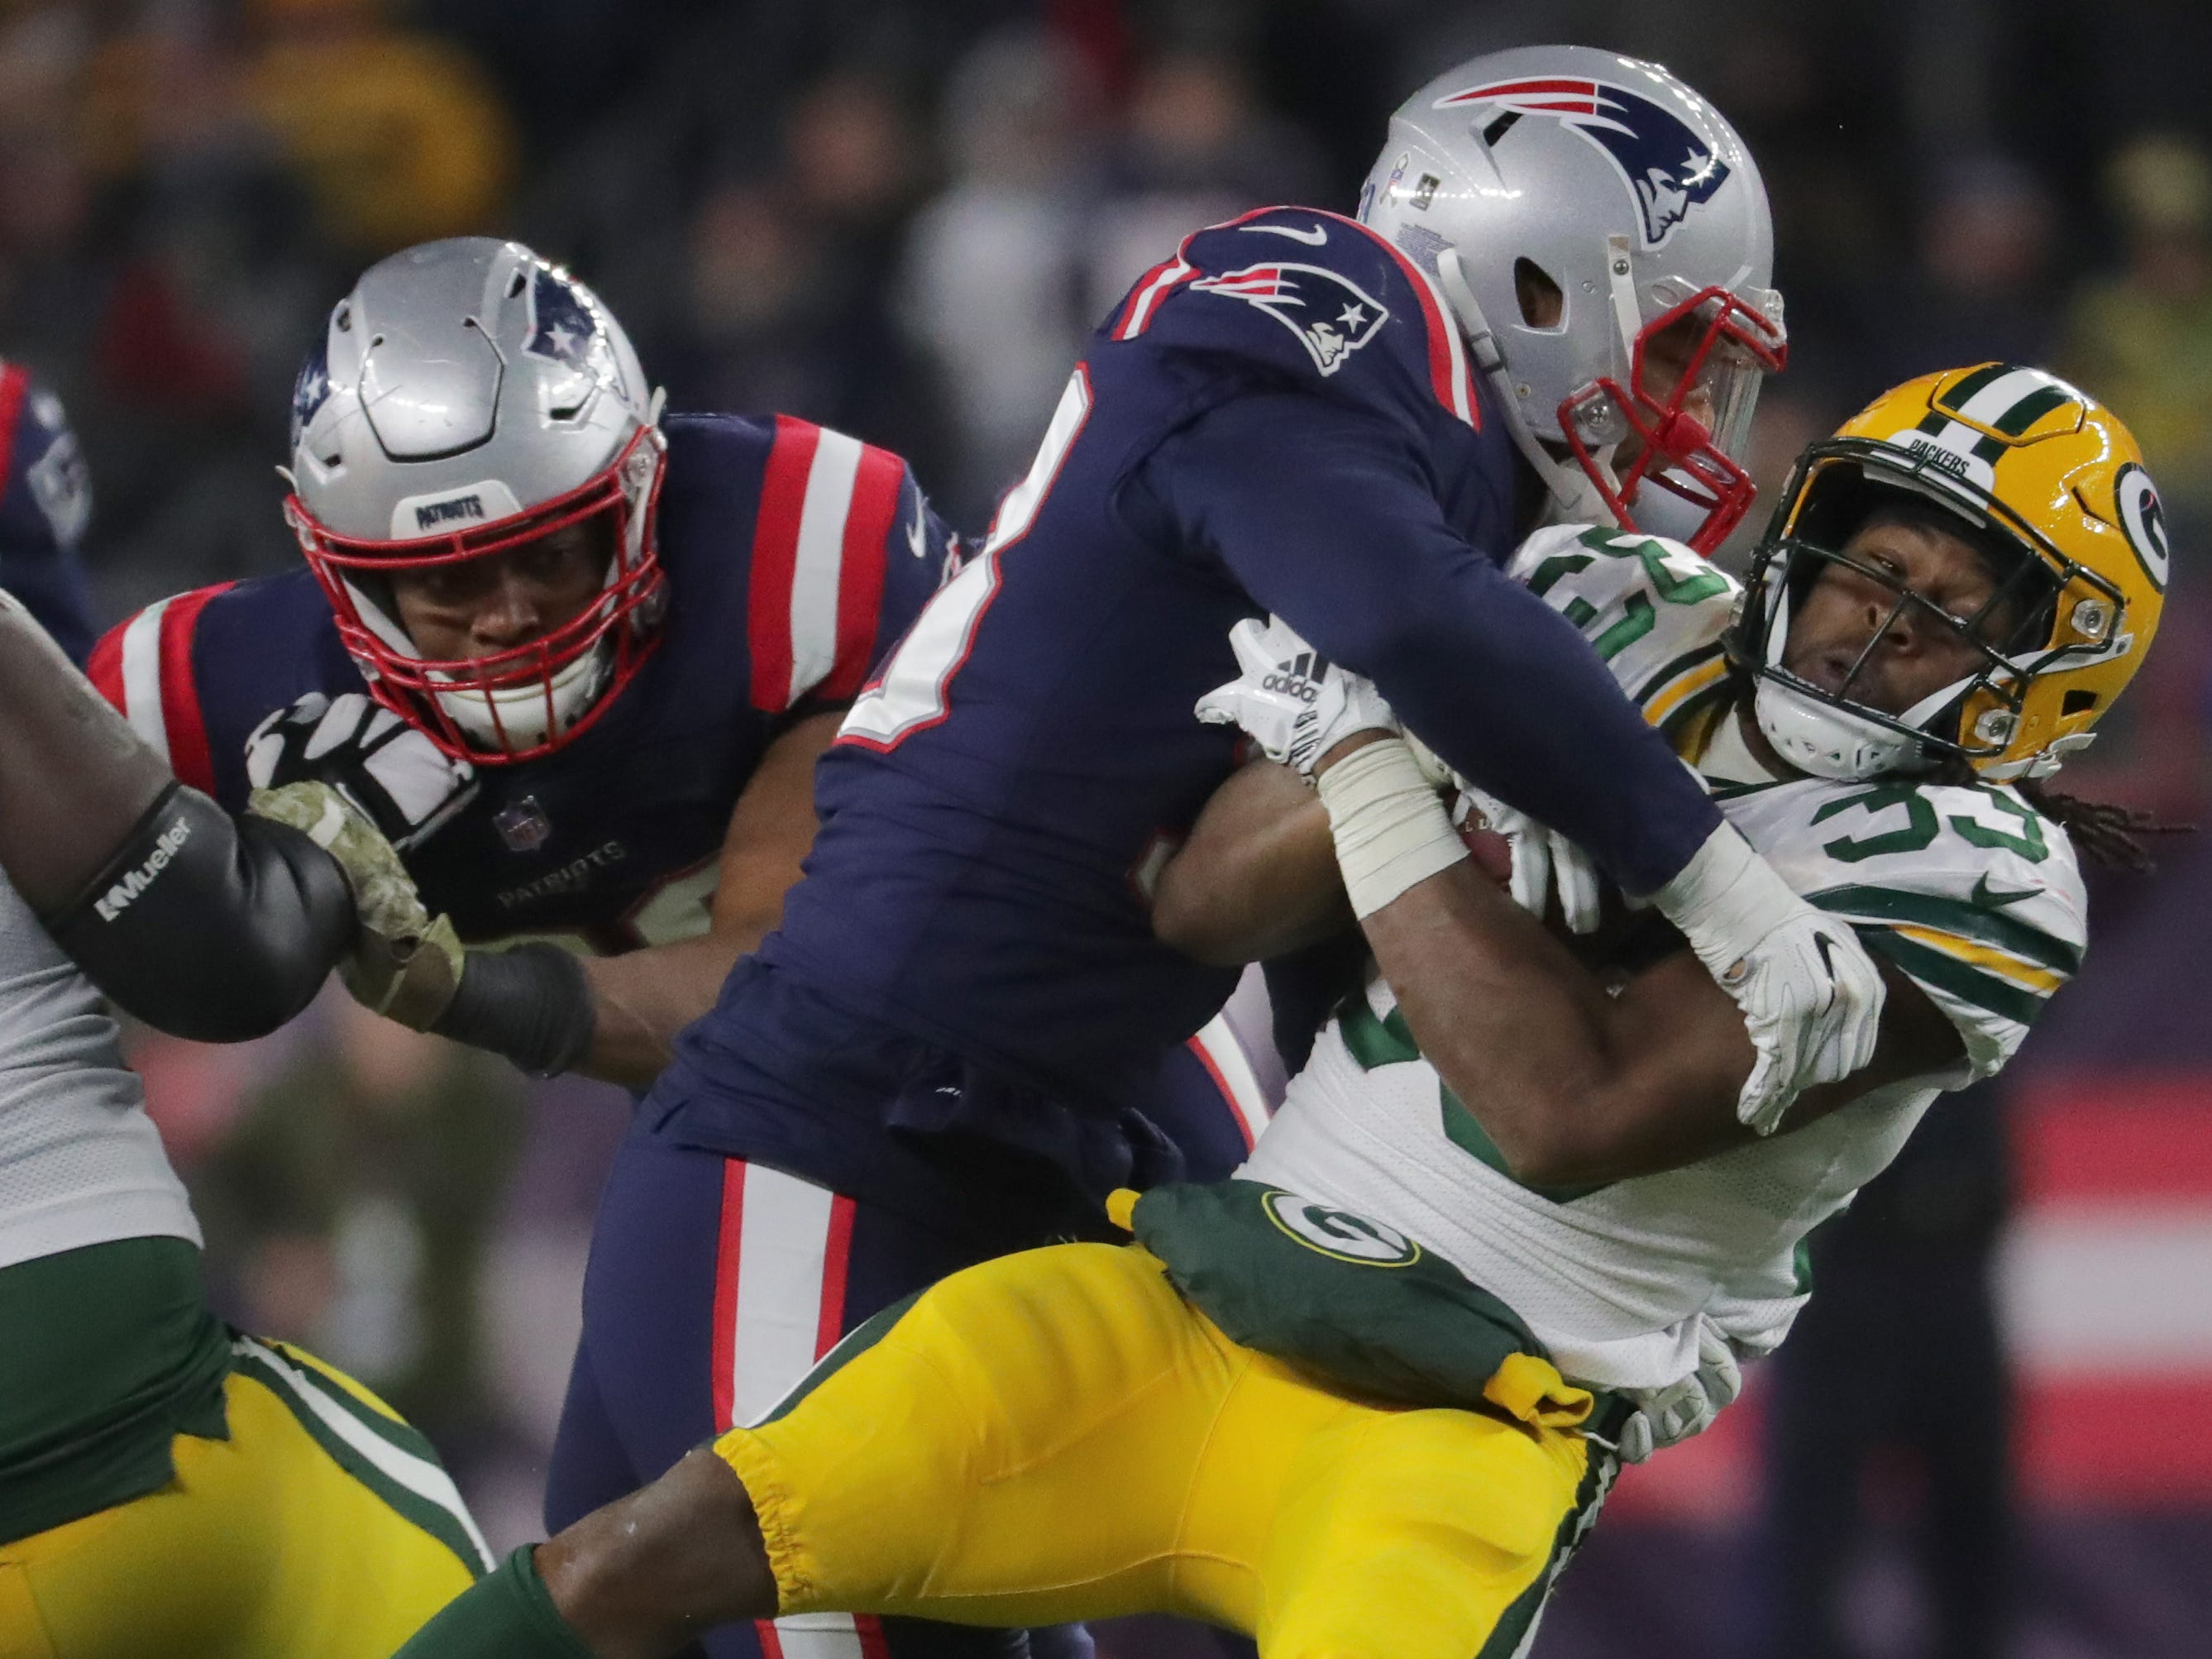 New England Patriots middle linebacker Kyle Van Noy (53) stuffs Green Bay Packers running back Aaron Jones (33) at the line during the fourth quarter of their game Sunday, November 4, 2018 at Gillette Stadium in Foxborough, Mass. The New England Patriots beat the Green Bay Packers 31-17.